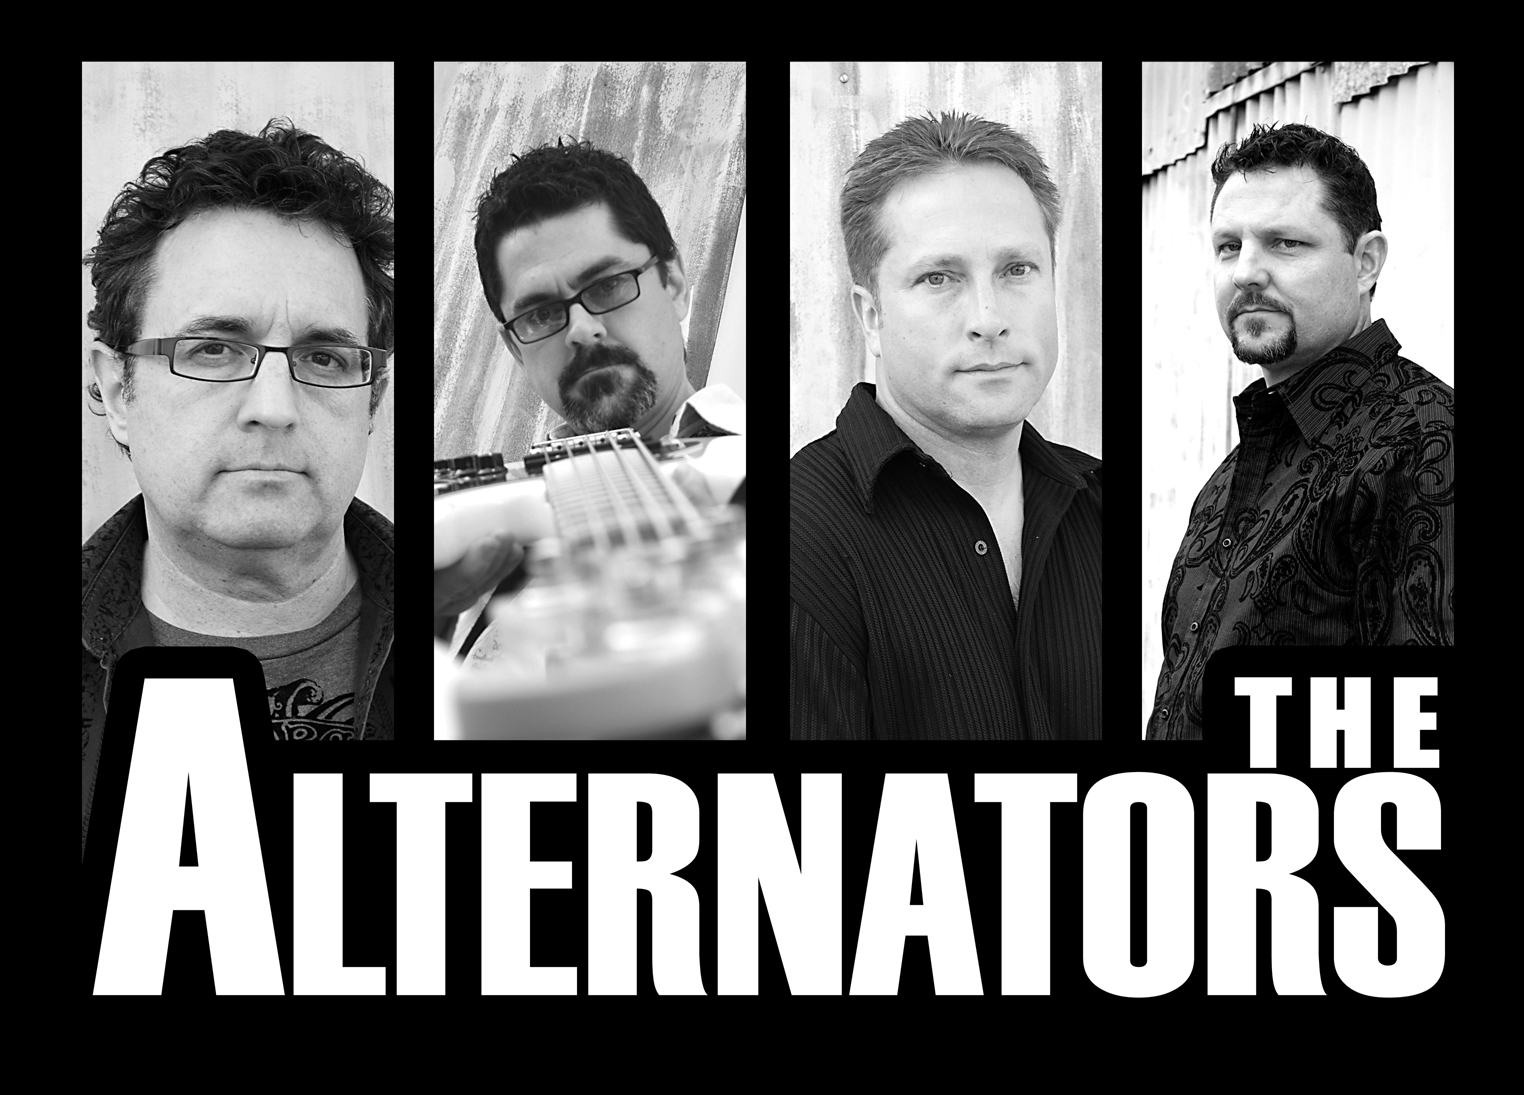 The Alternators #3